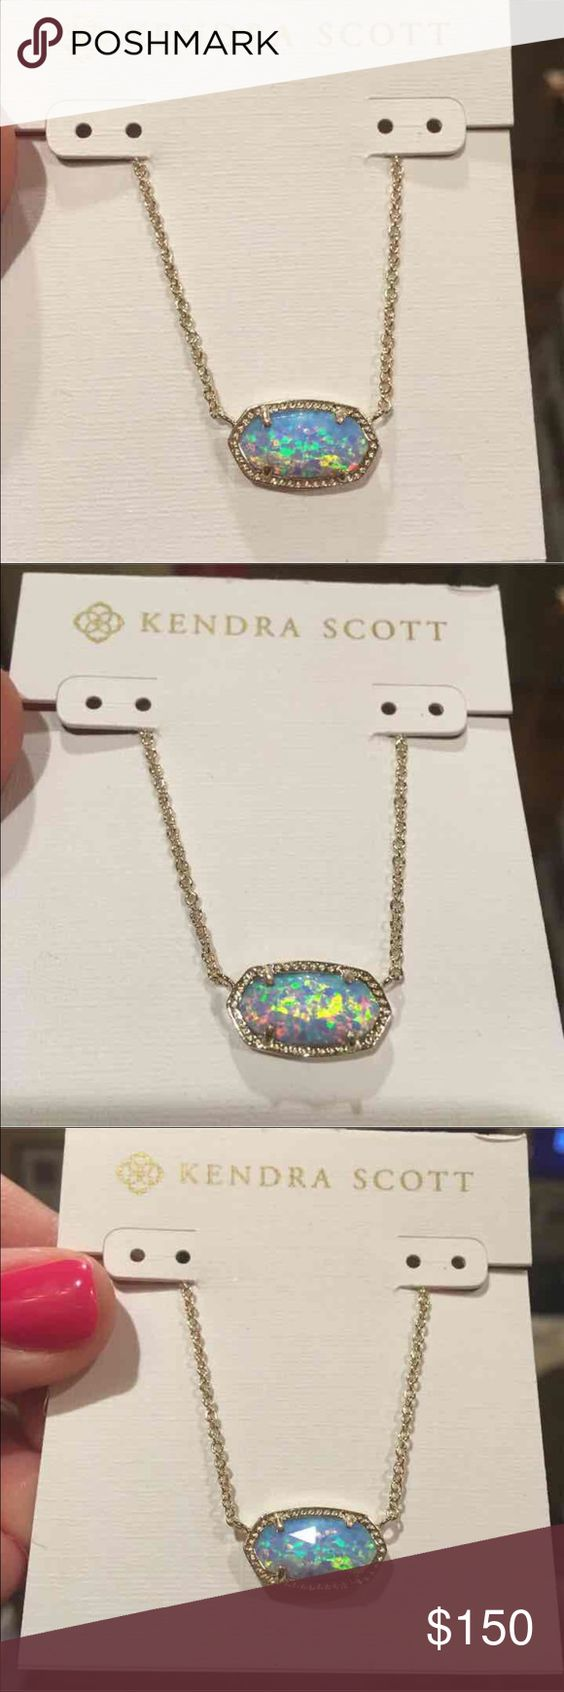 NWT Kendra Scott gold ice blue Opal Elisa NWT custom Kendra Scott ice blue Kyocera Opal Elisa necklace. This is a gorgeous stone that was part of the Holiday 2015 collection, and it is sold out and hard to find. This was never sold by Kendra in an Elisa, only an Eloise. This stone has been transferred to a gold Elisa. If you would prefer it in silver, gunmetal or rose gold, I can make that for you as well. No trades, price is firm here, cheaper on Ⓜ️ Kendra Scott Jewelry Necklaces